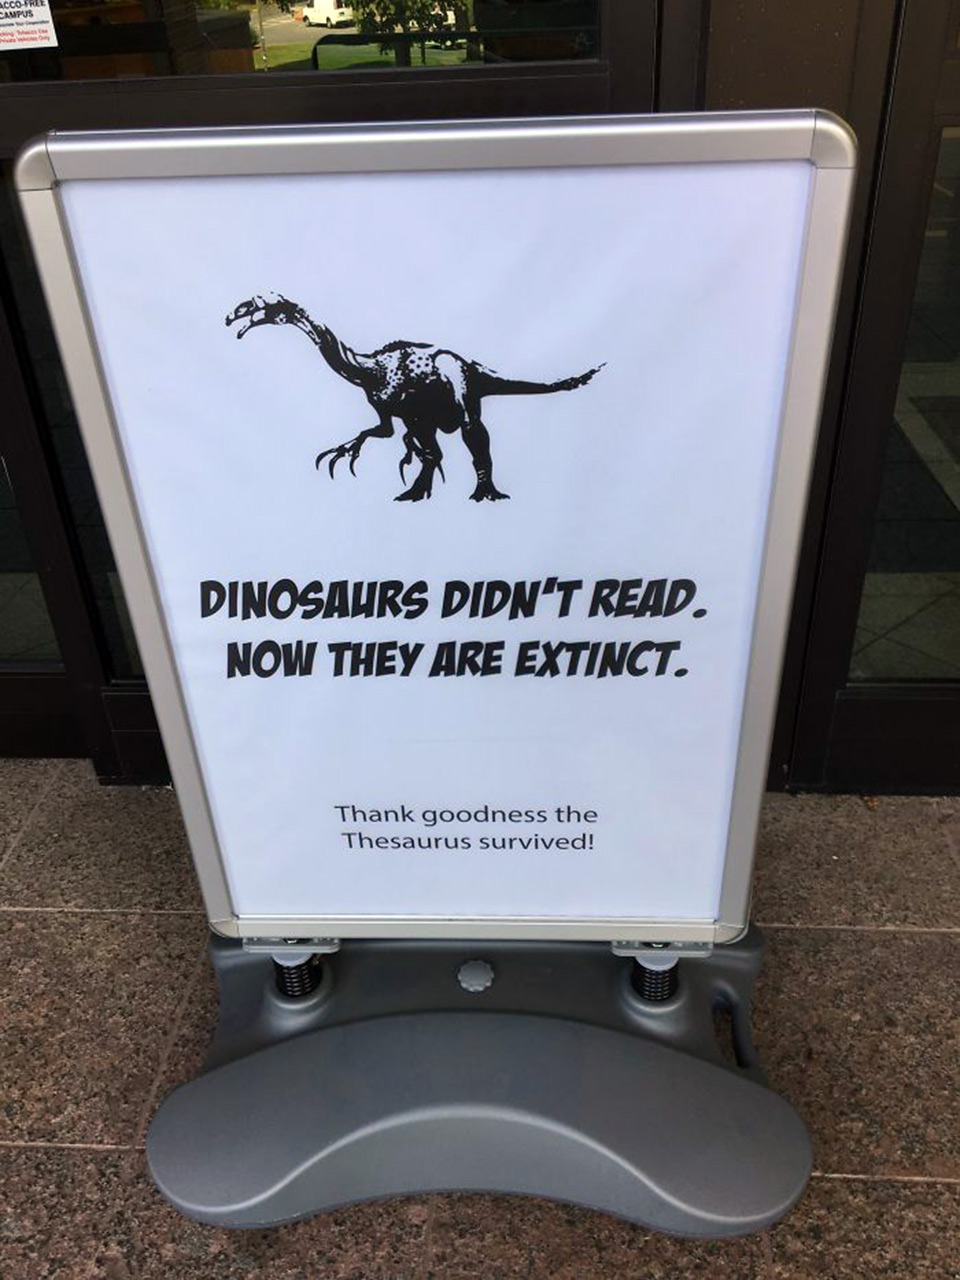 Dinosaurs Didn't Read, Now They're Extinct Sign and 10 More Strange Things Spotted at Libraries